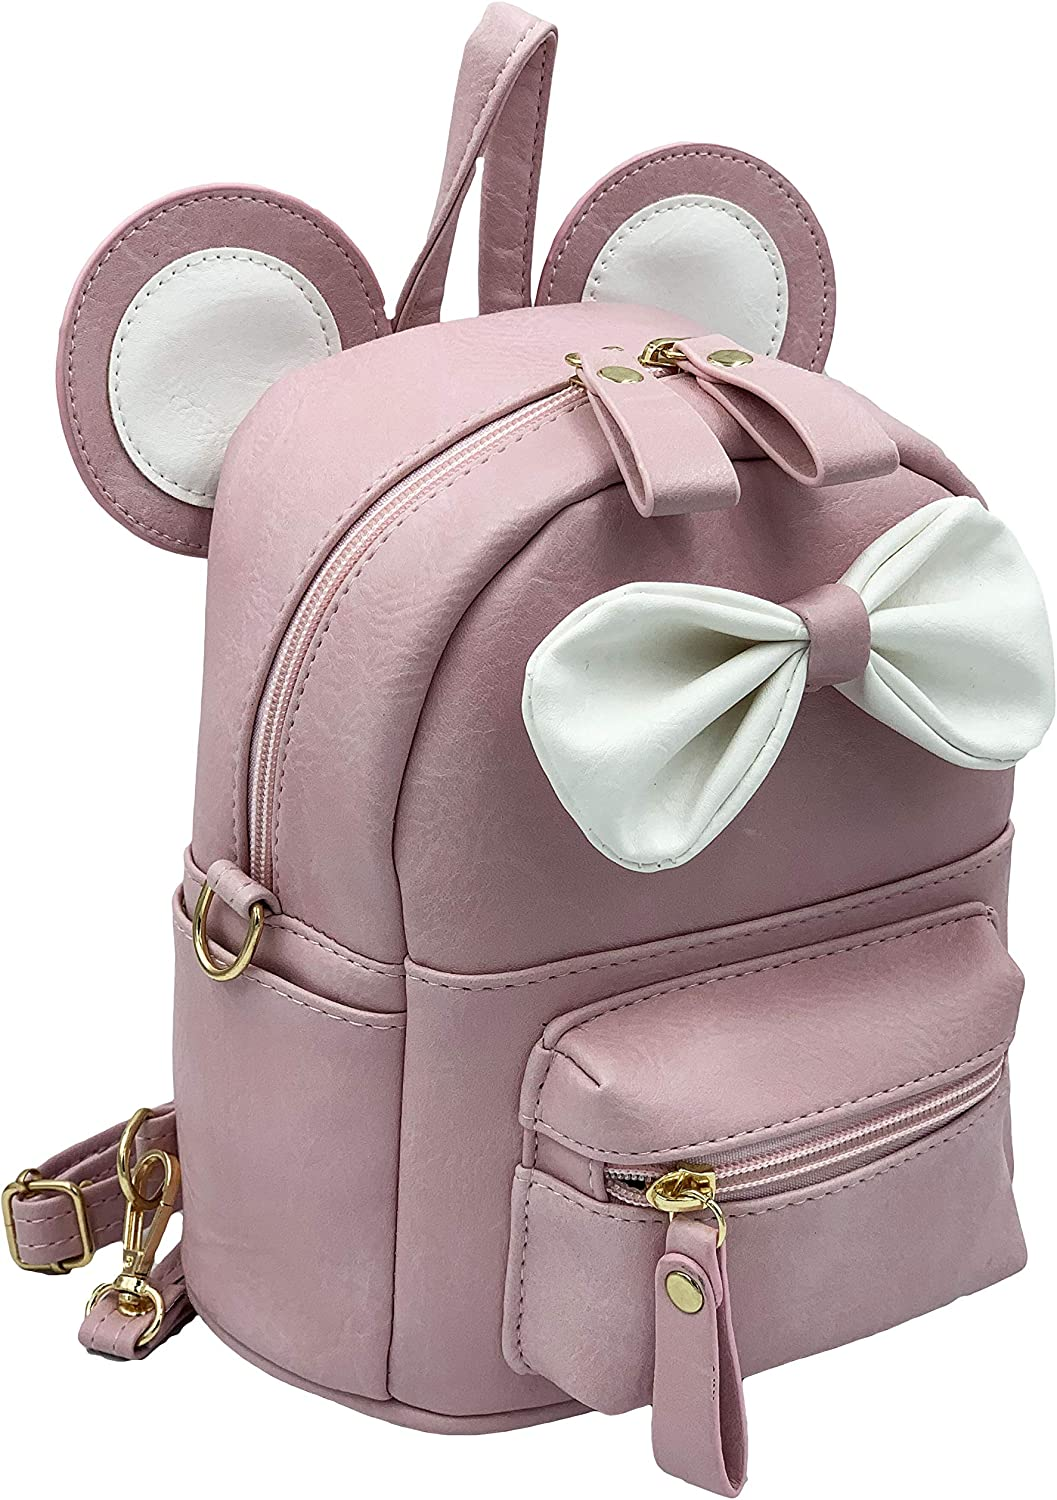 Cute small Backpack Mouse ears for girls Minnie Mouse mini backpack for Woman Kids Teens and Toddler Girls